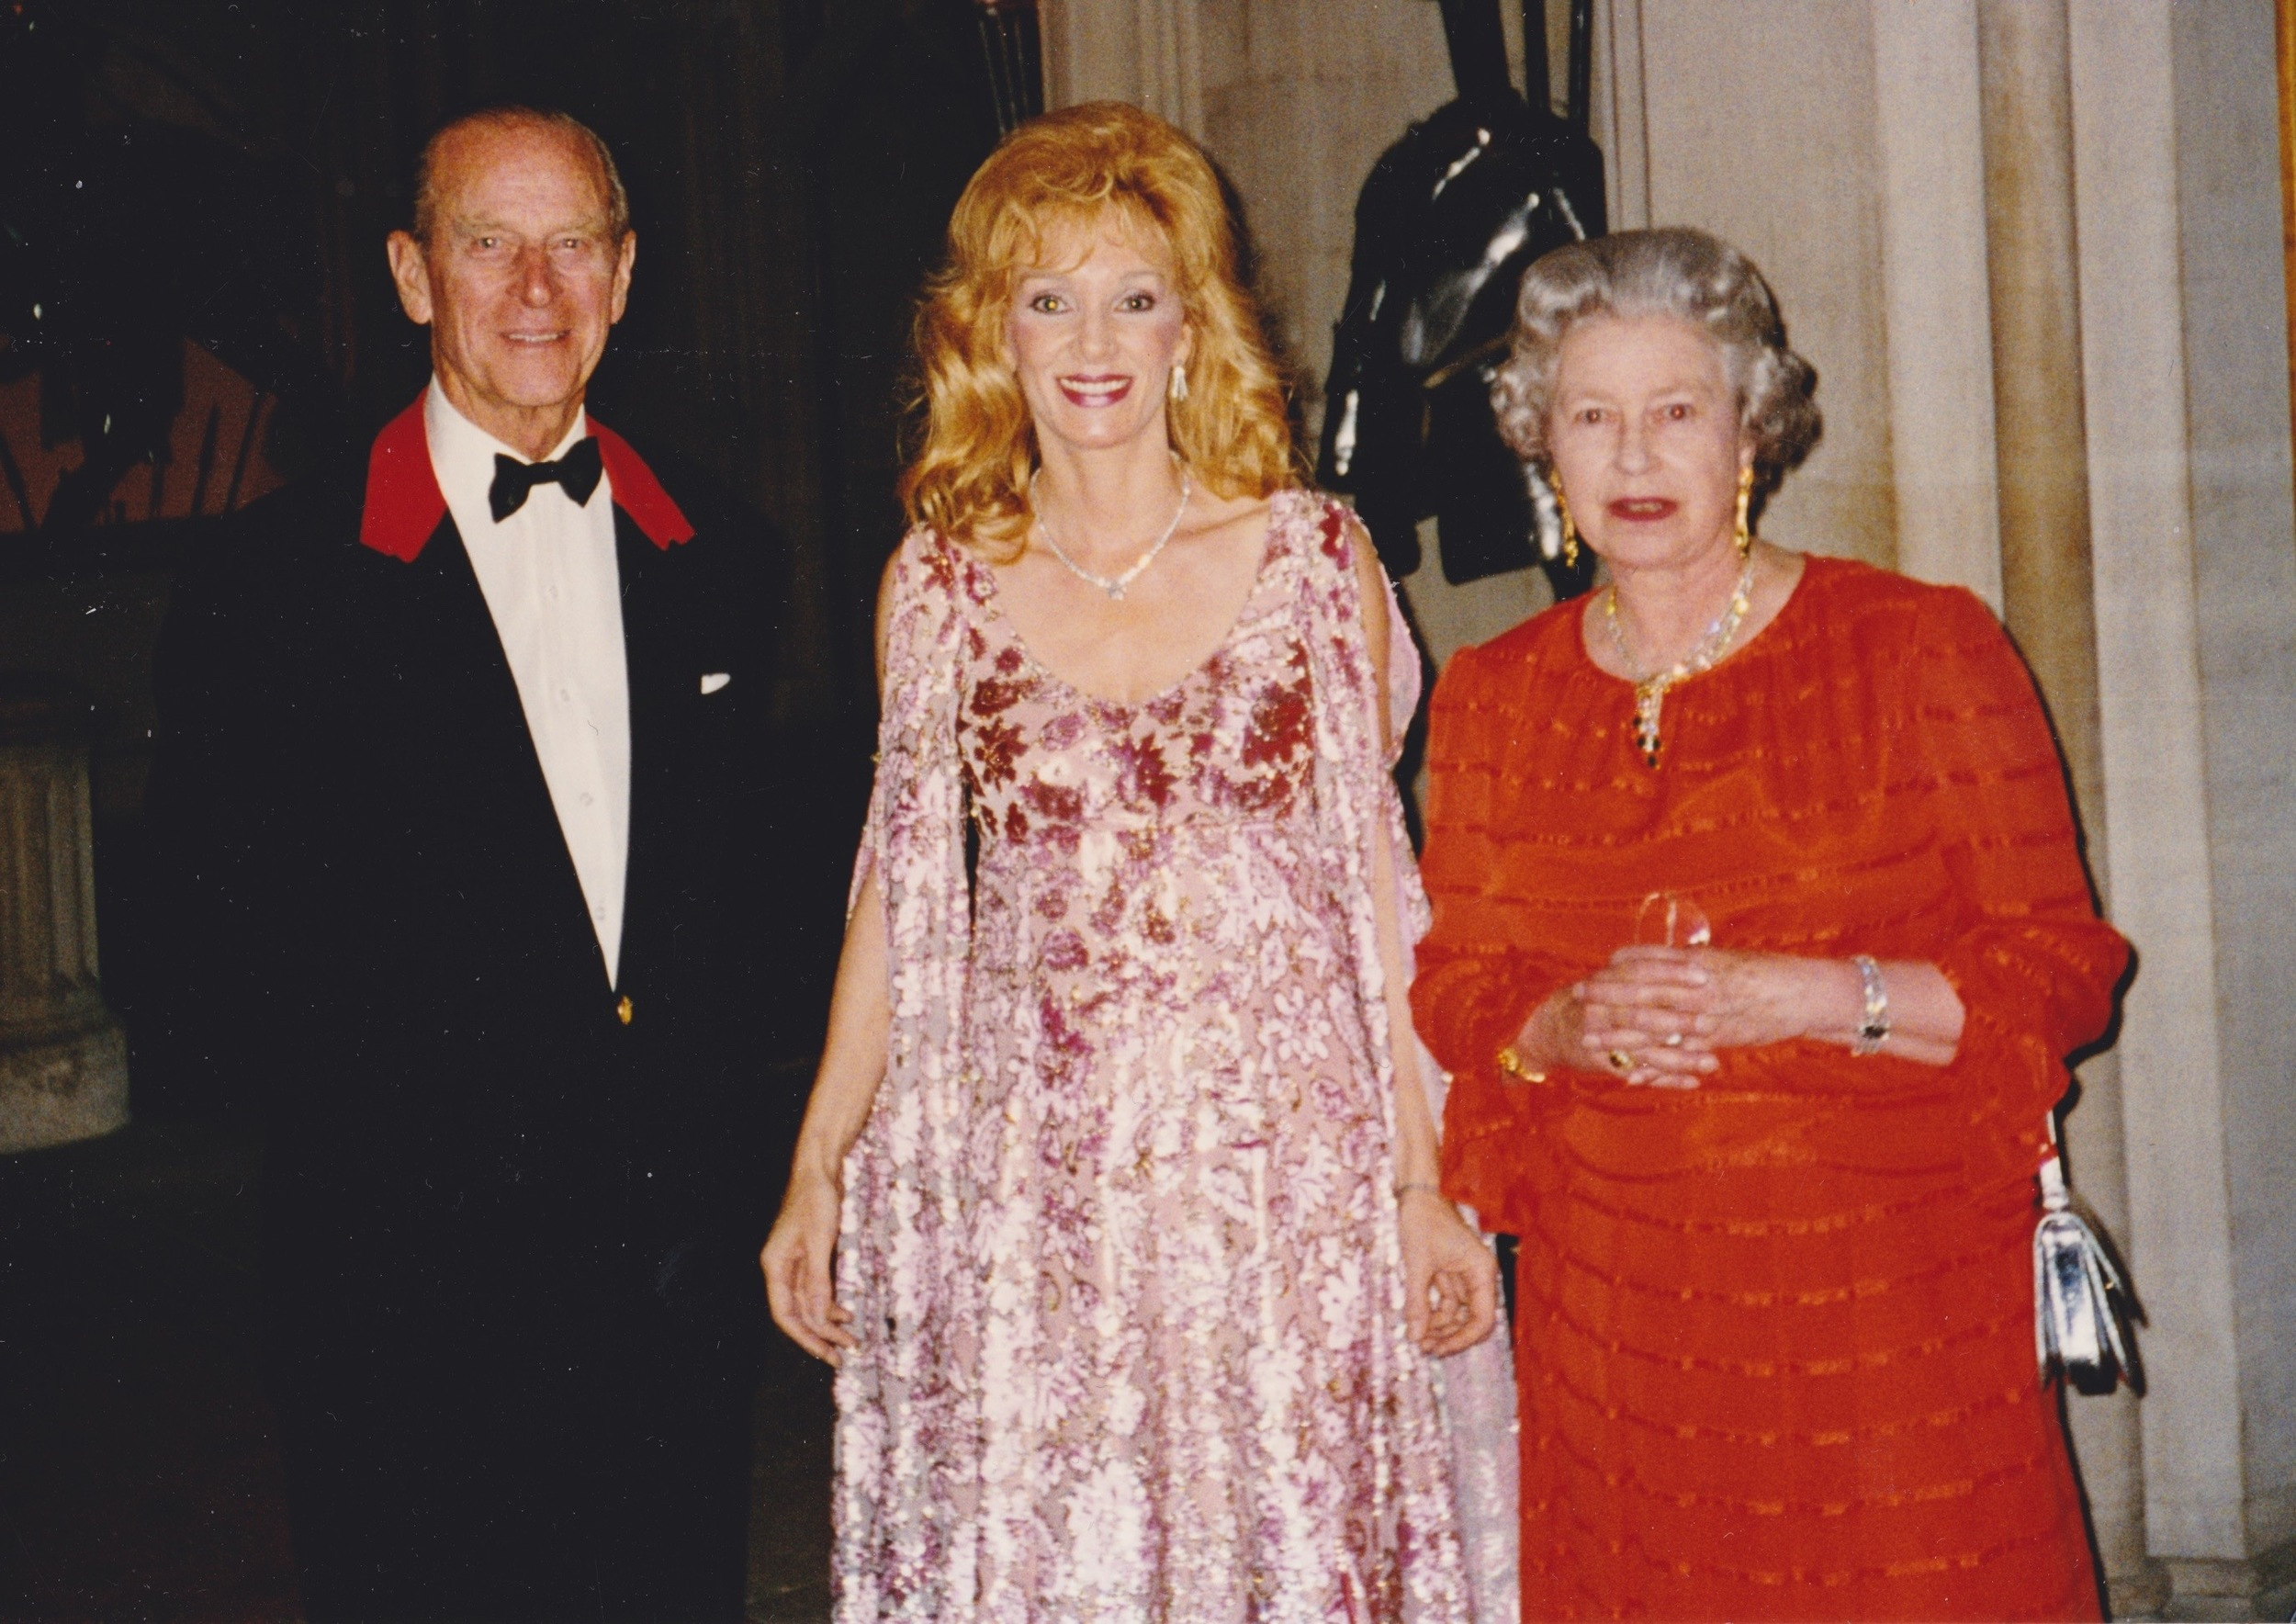 1996 with Prince Philip and The Queen